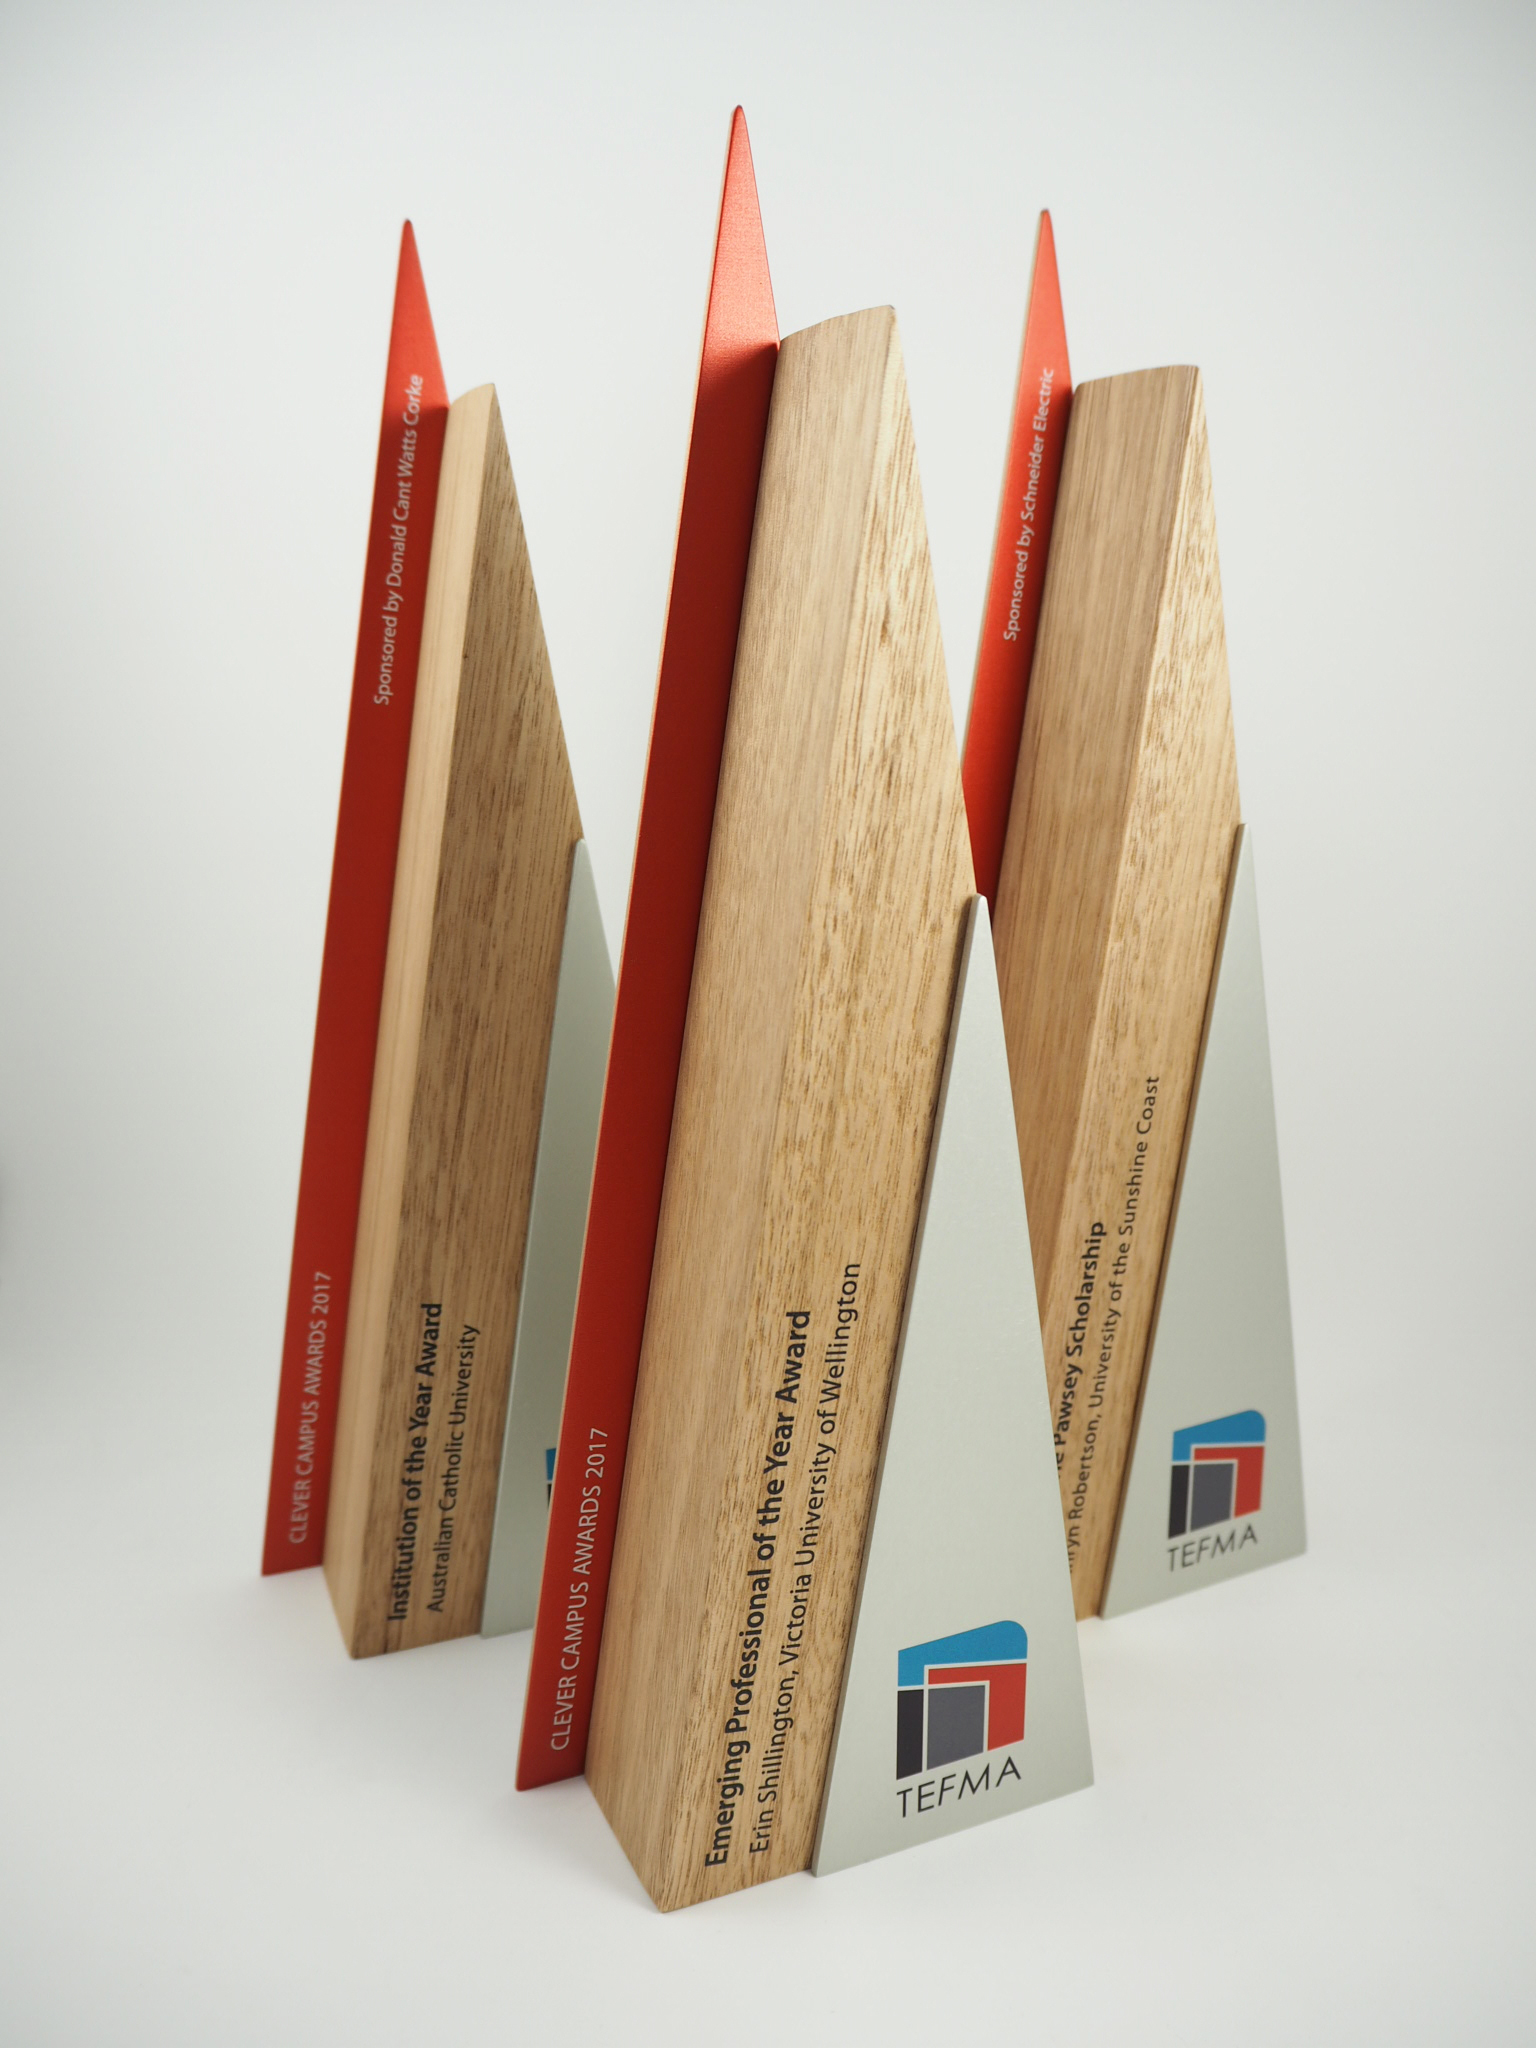 tefma-awards-timber-eco-aluminium-trophy-03.jpg